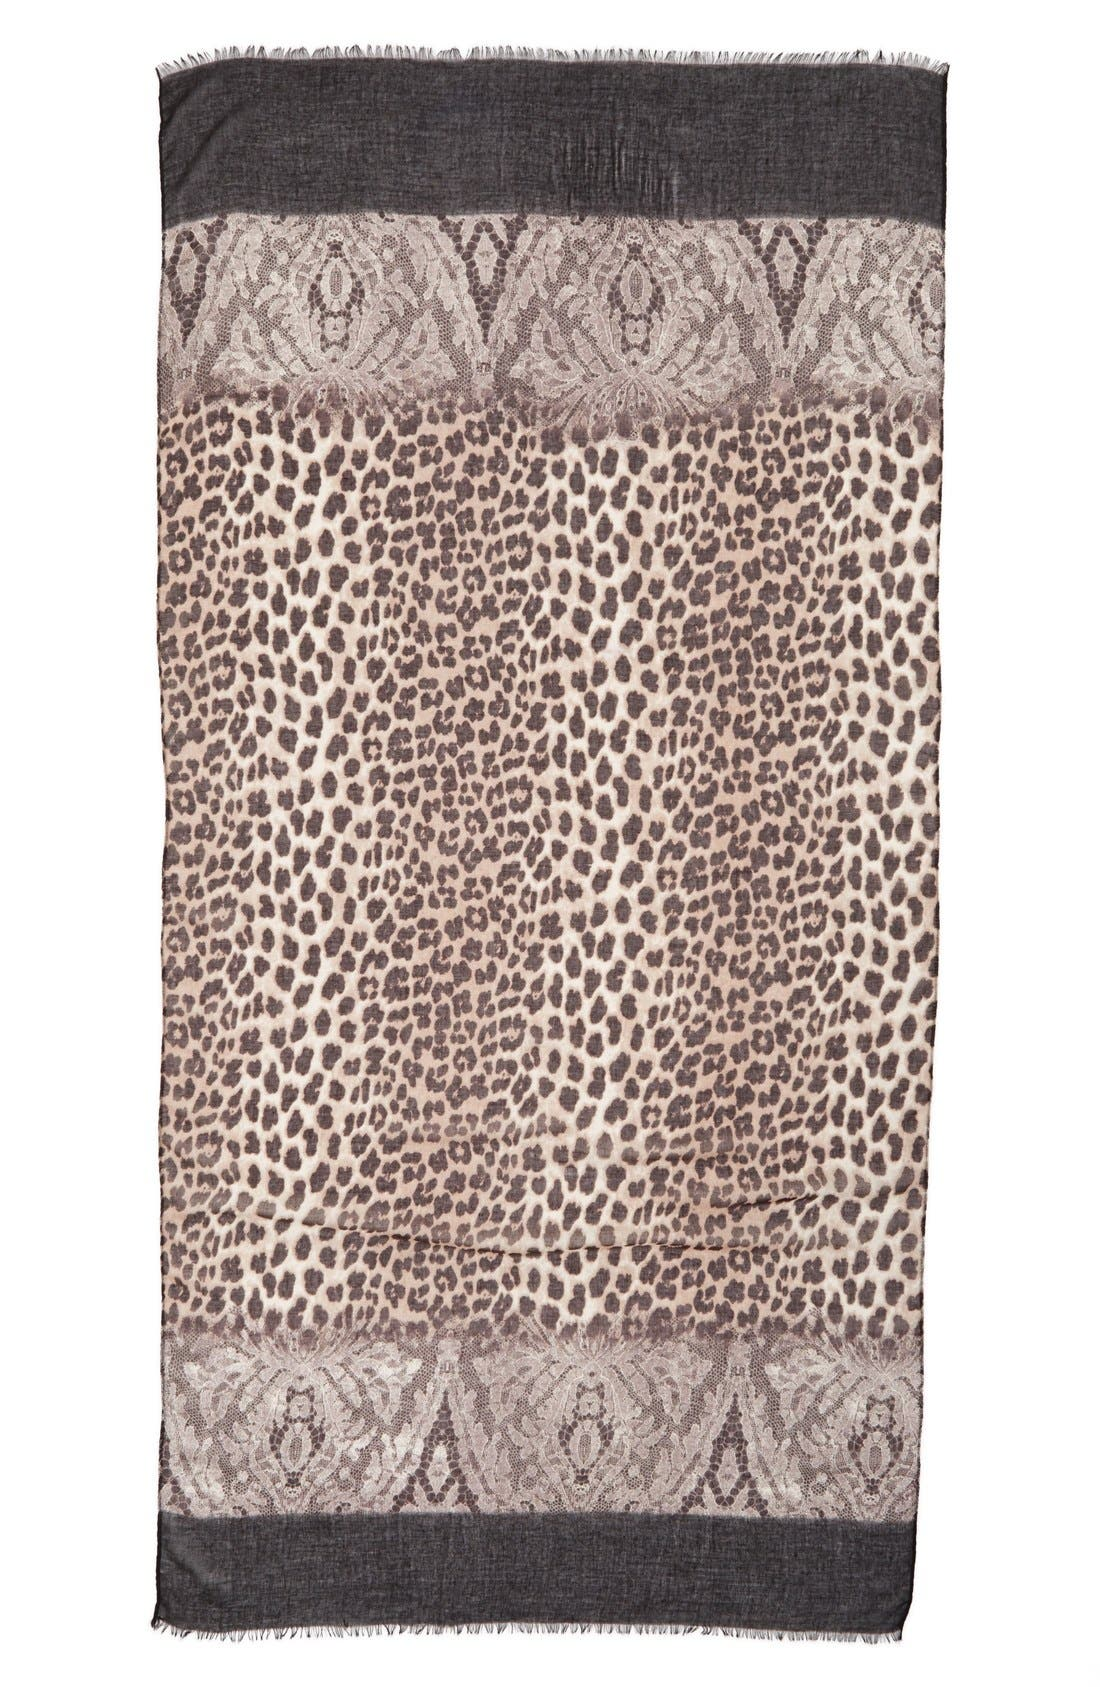 Animal Lace Scarf,                             Alternate thumbnail 2, color,                             001